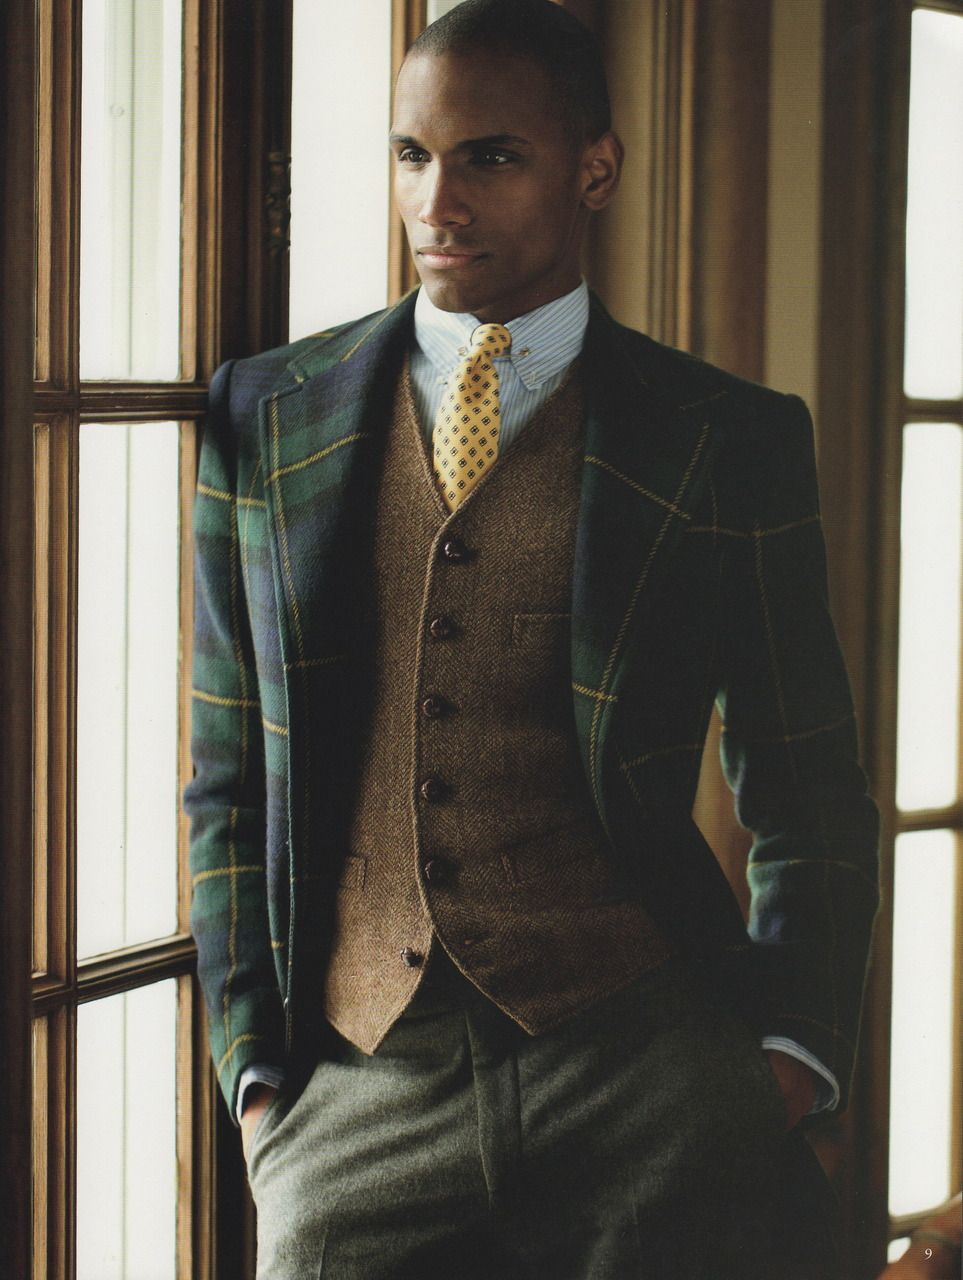 From Ralph Lauren's 2009 collection